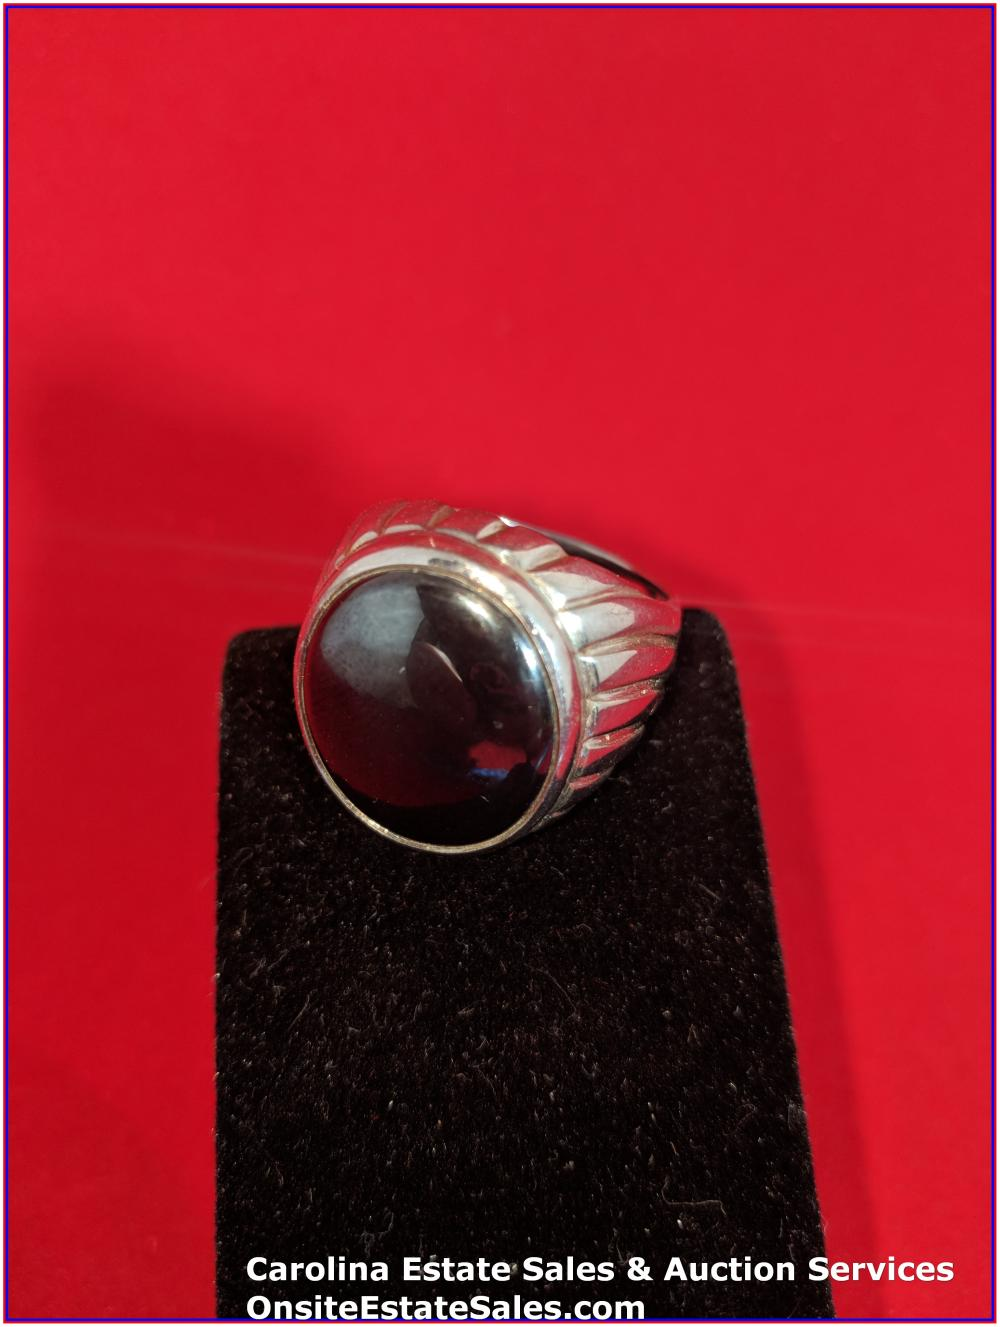 925 Sterling Gem Ring 20 Grams Total Weight Includes Stone